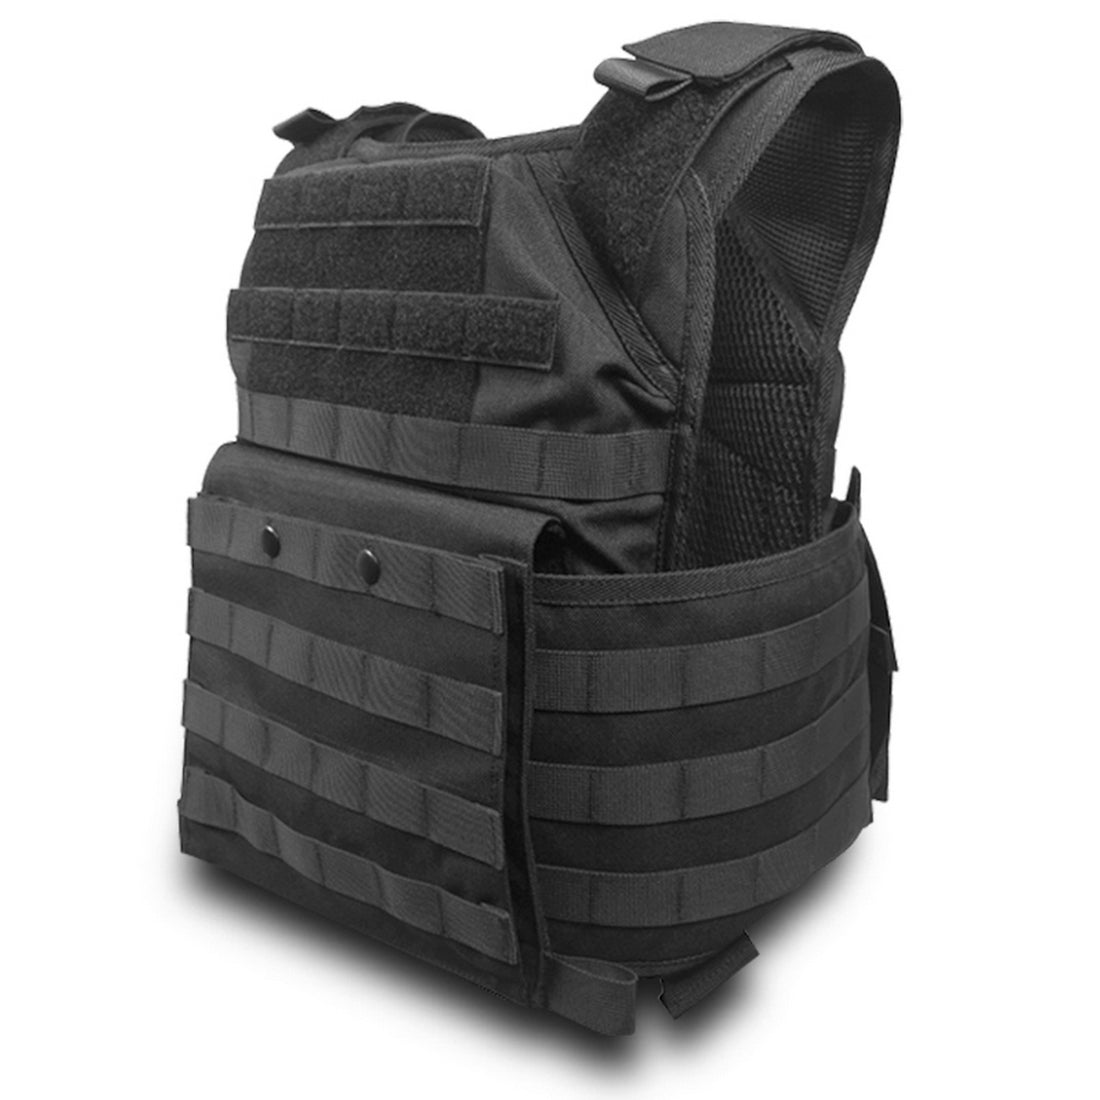 SecPro Spartan Tactical Plate Carrier - Black